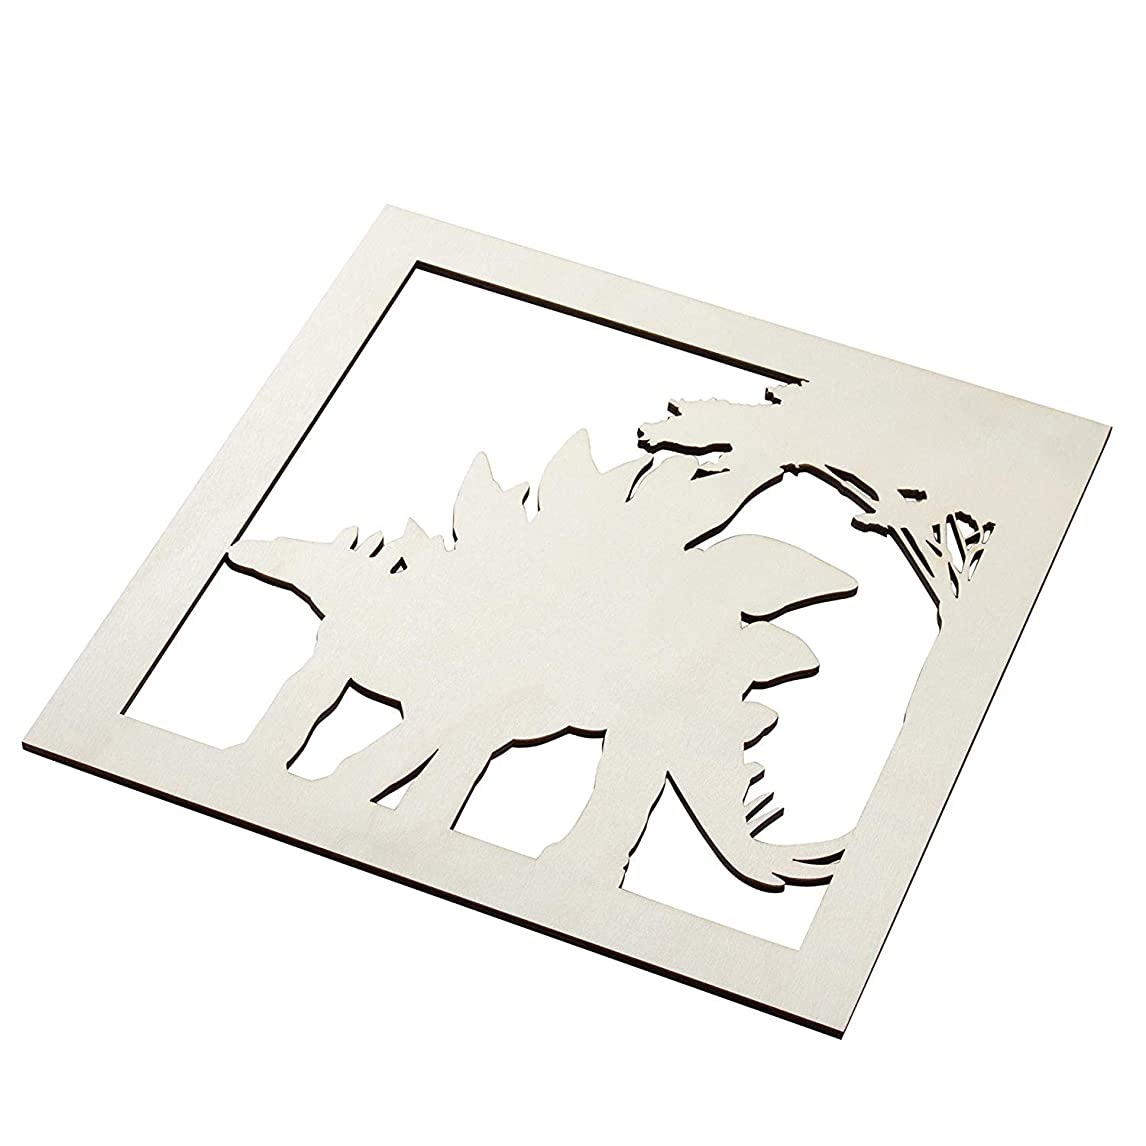 Genie Crafts 2-Piece Unfinished Wooden Stegosaurus Dinosaur Cutout, Wall Art Decor for Painting, DIY Wood Crafts, and Signs, 11.6 x 0.2 Inches jfjxf62882575106